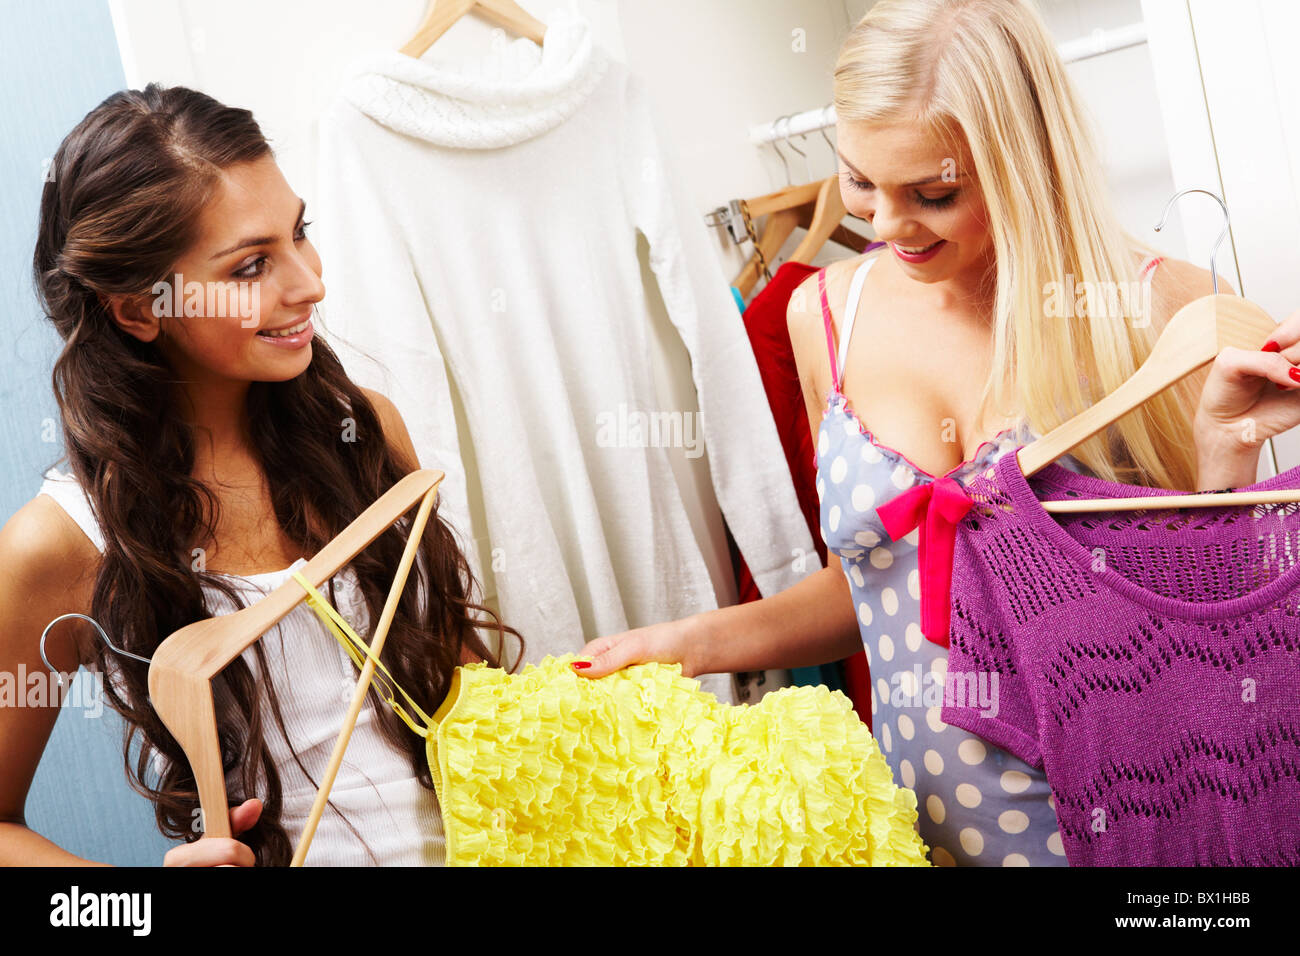 Image of pretty females looking at smart dress while choosing a right one - Stock Image